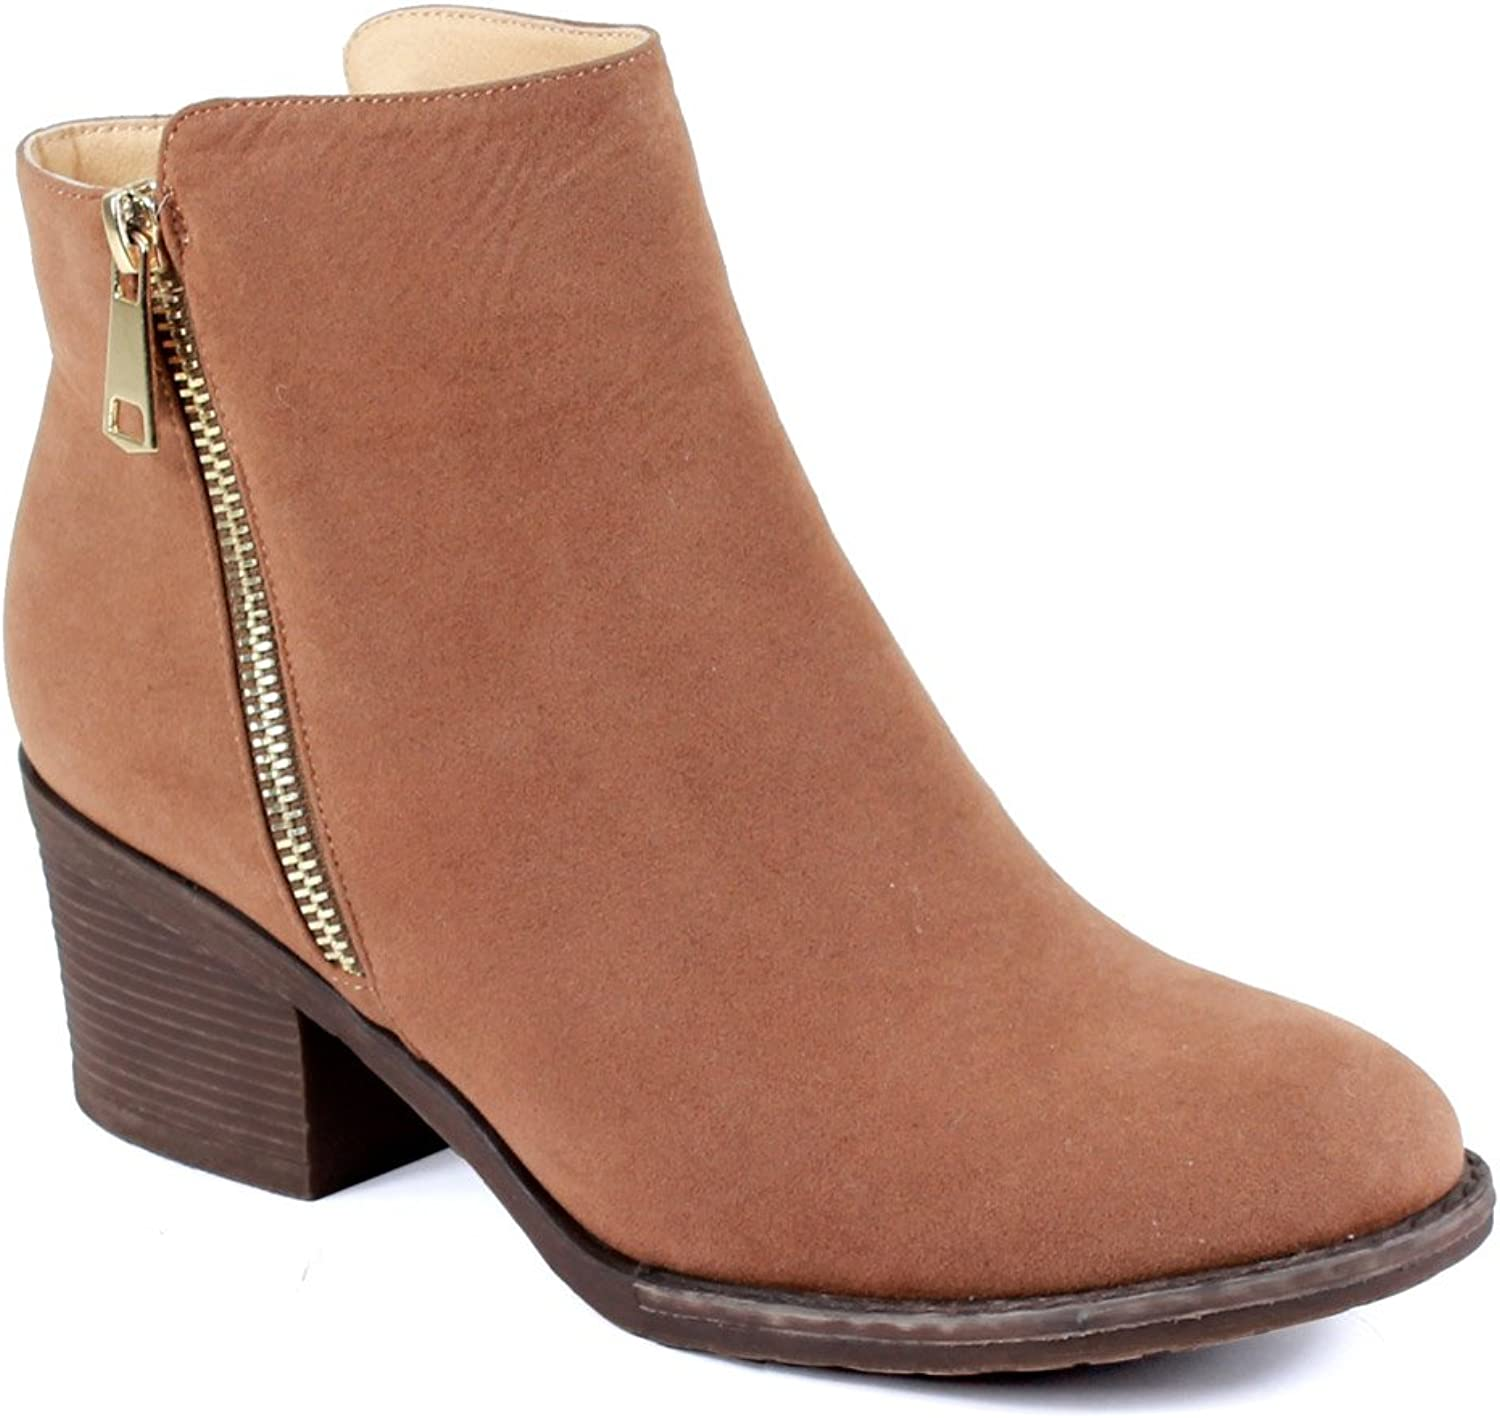 Reneeze PAMA-01 Womens Fashionable Stacked Heels Ankle Booties - Camel